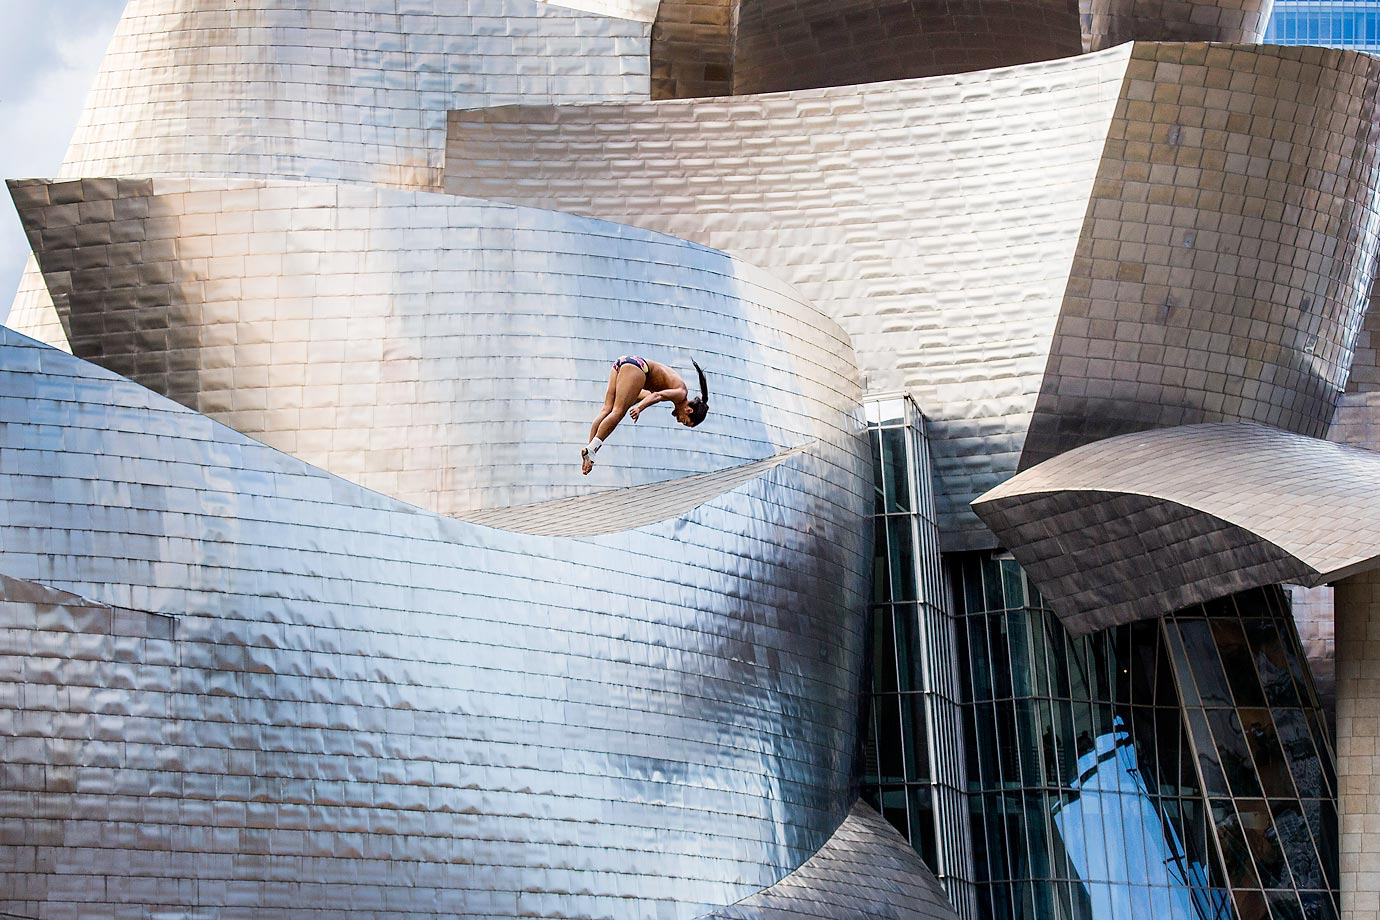 Orlando Duque of Colombia dives from the 27-meter platform on La Salves Bridge next to the Guggenheim Museum in Bilbao, Spain.